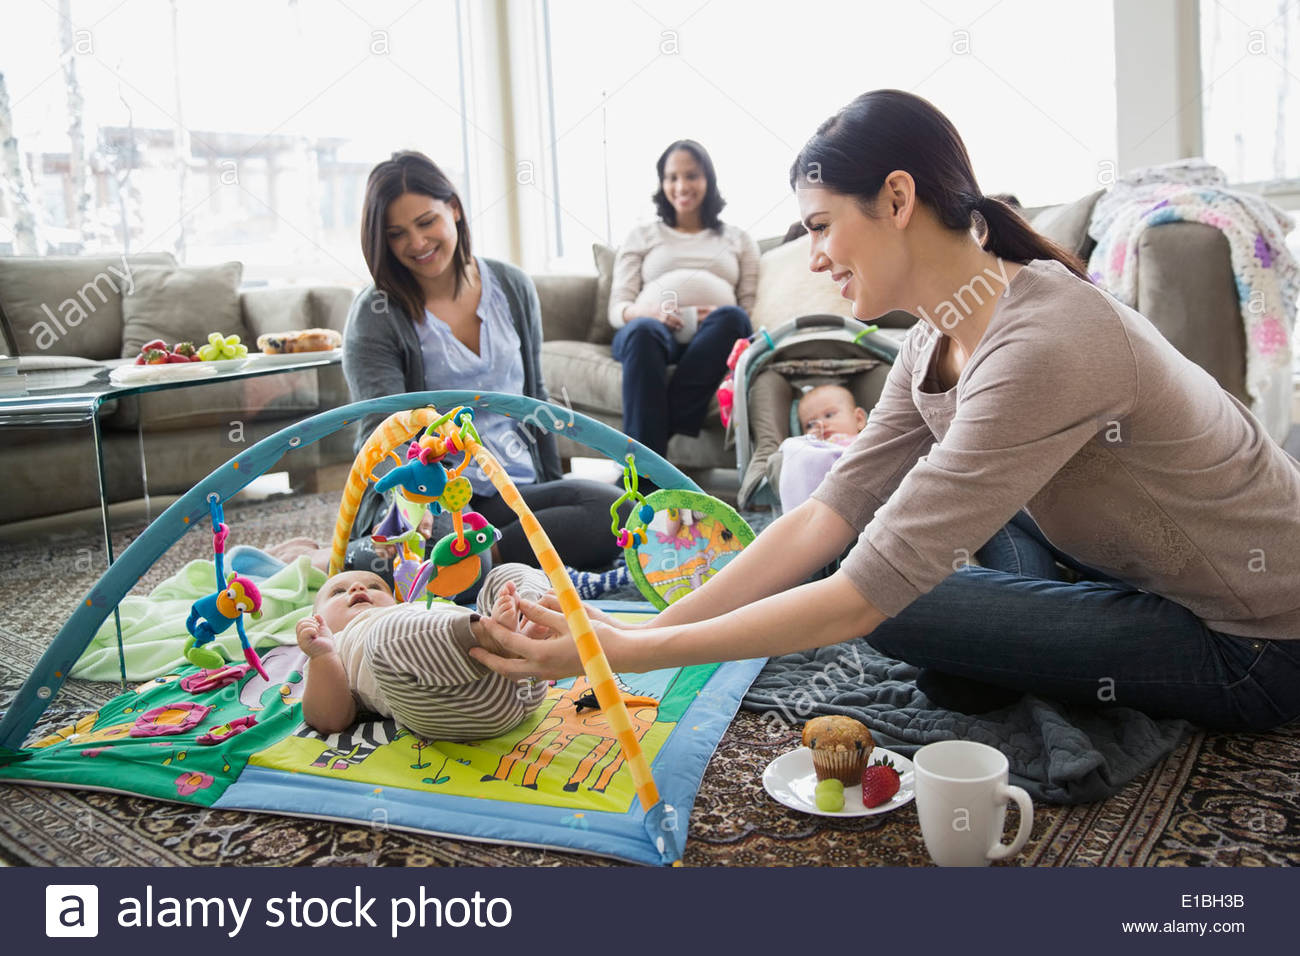 Mothers and babies in living room - Stock Image